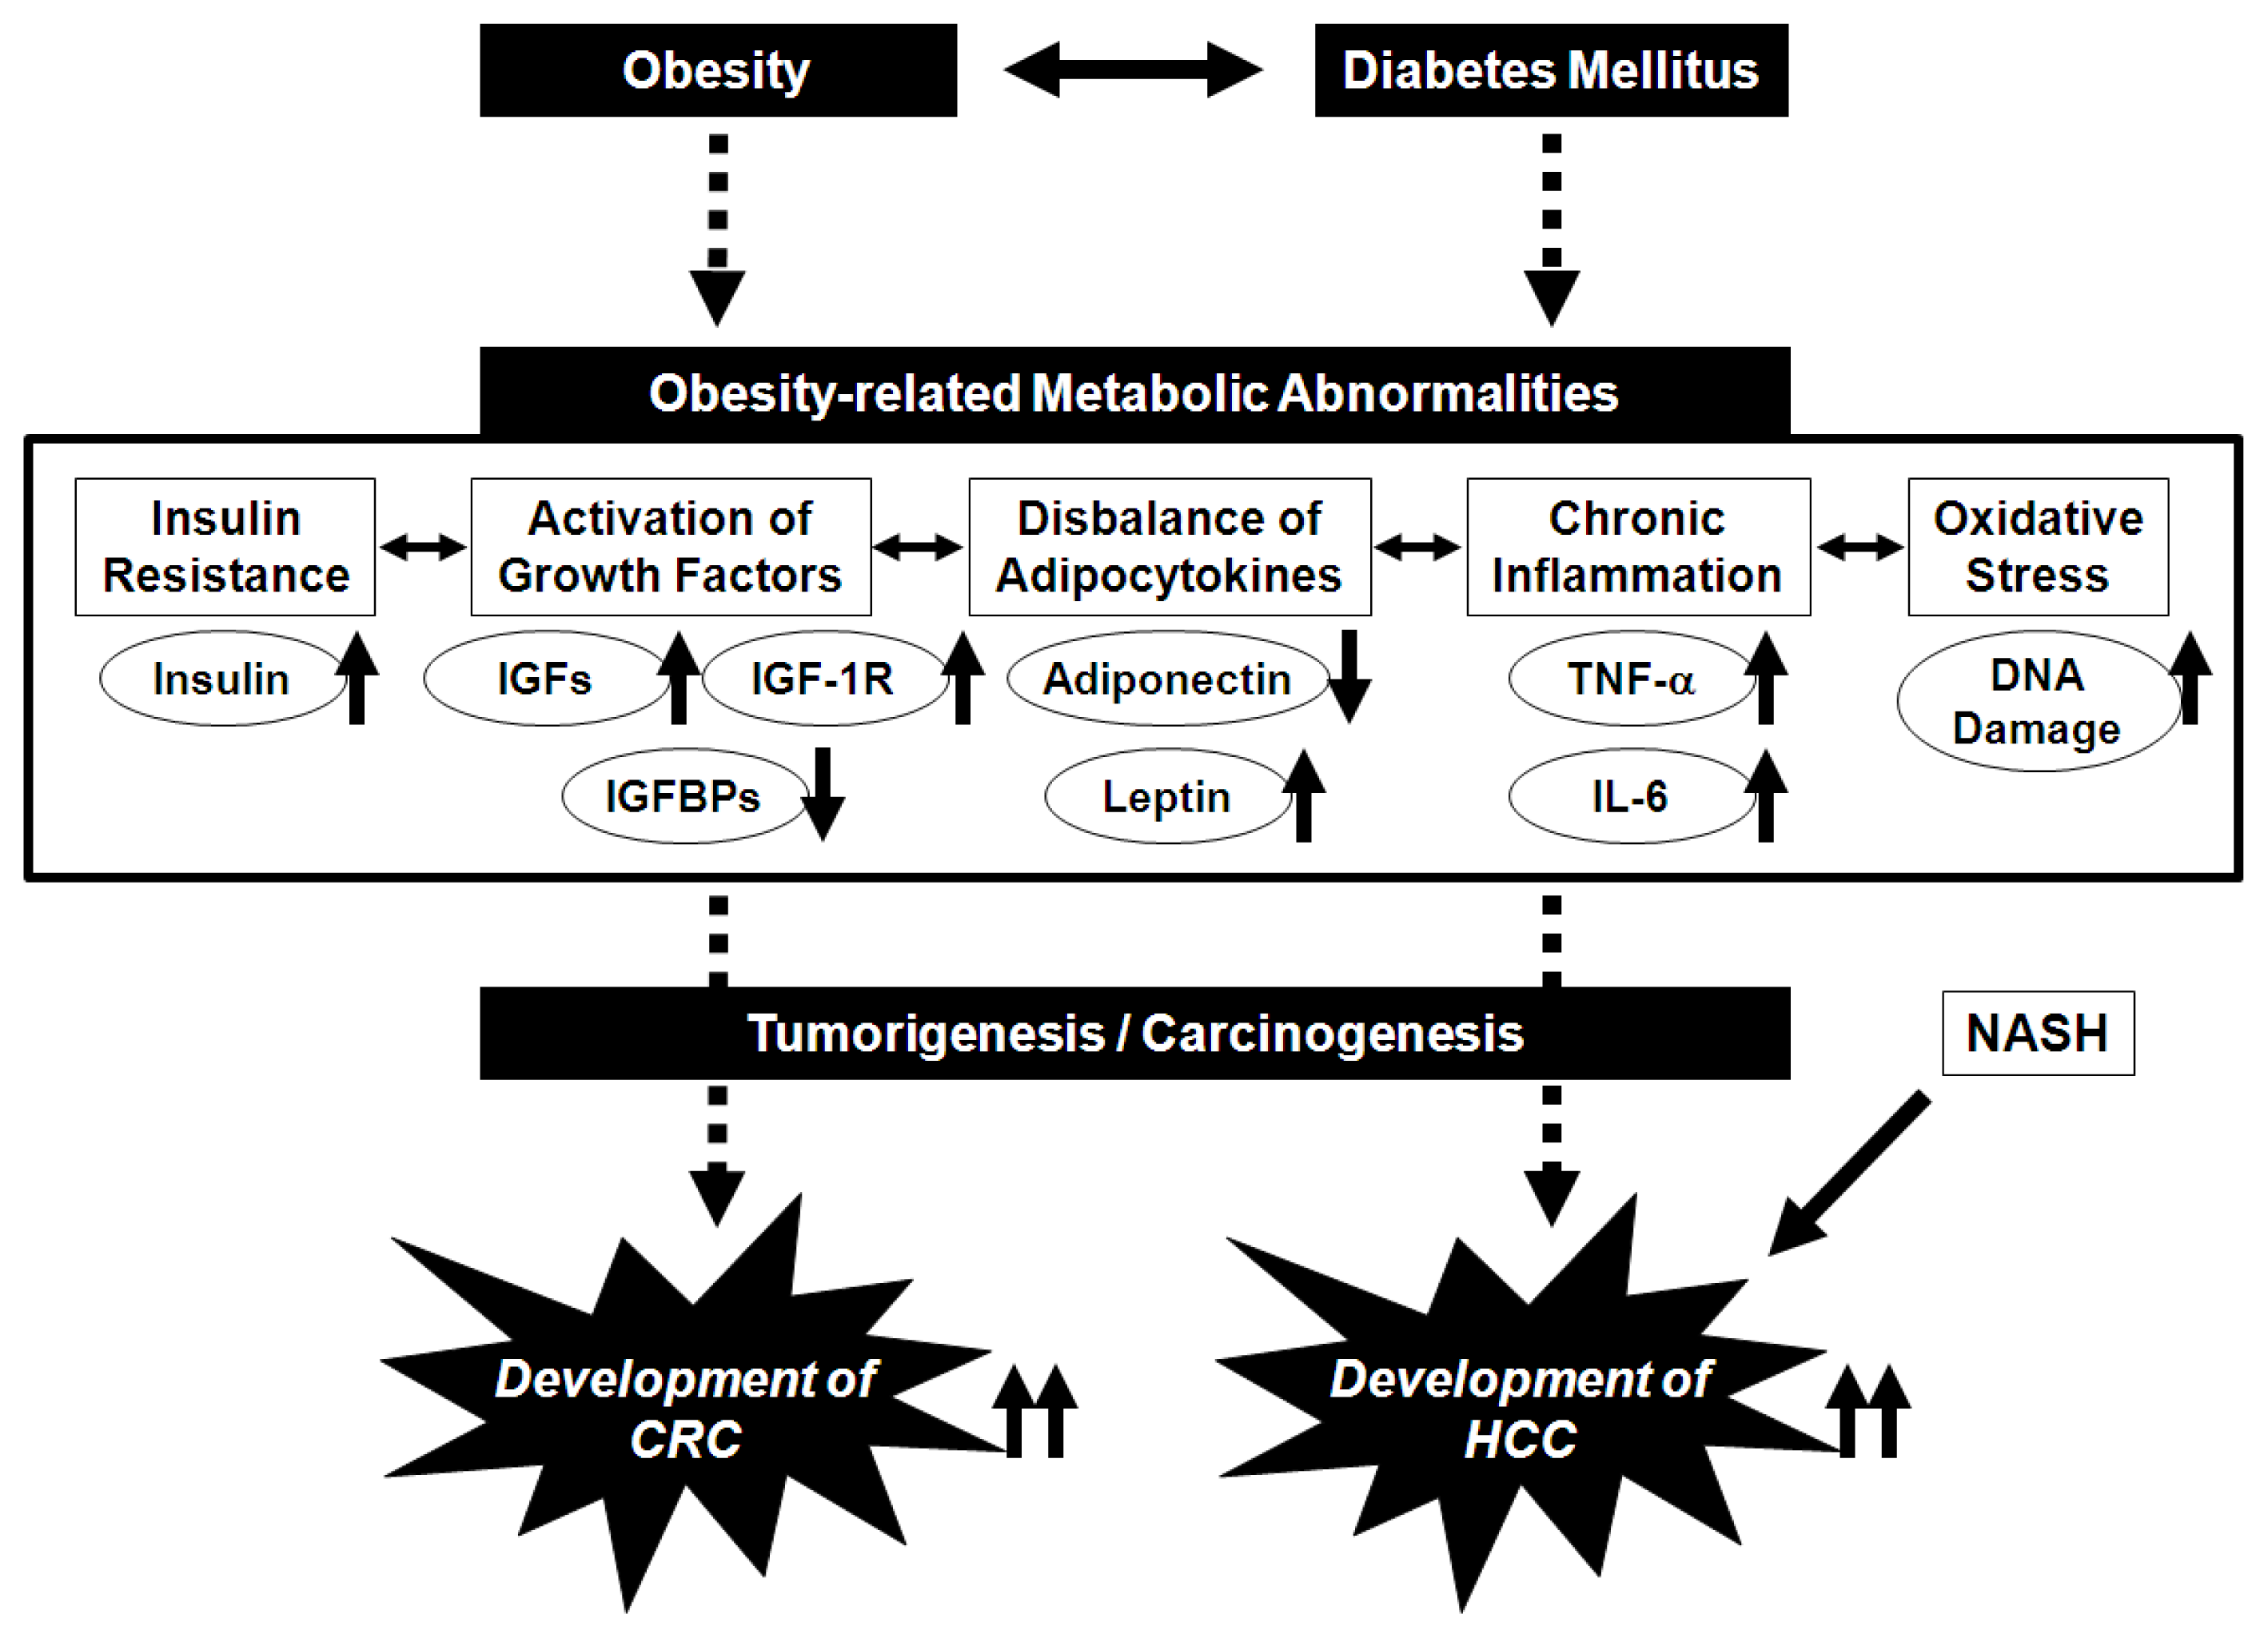 Ijms Free Full Text Nutraceutical Approach For Preventing Obesity Related Colorectal And Liver Carcinogenesis Html